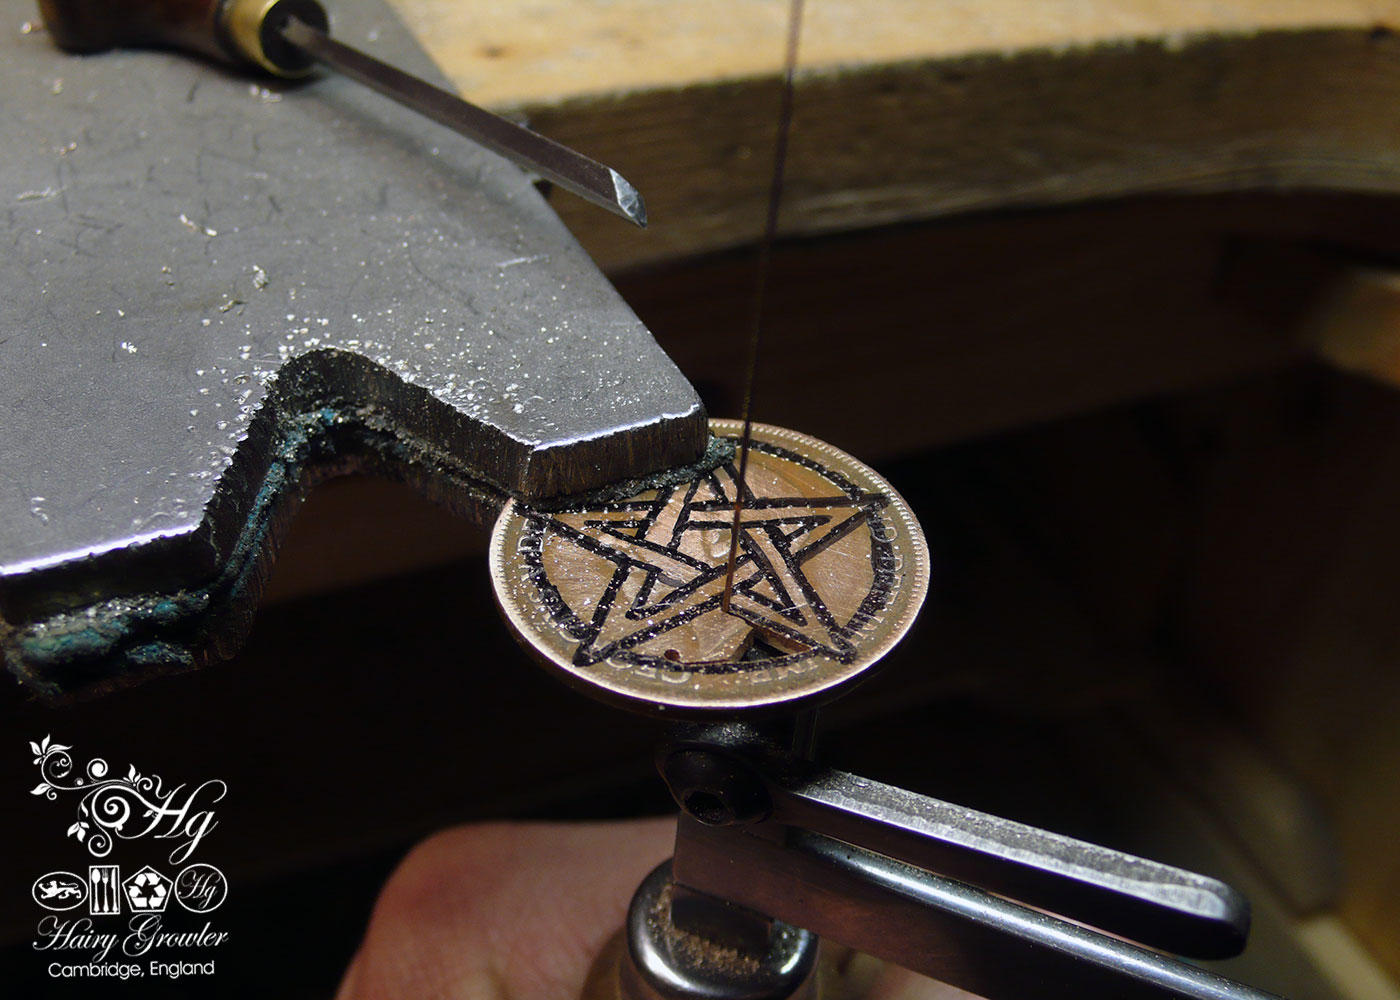 Hand cut pentacle coin pendant made as a personal talisman in the Hg workshop